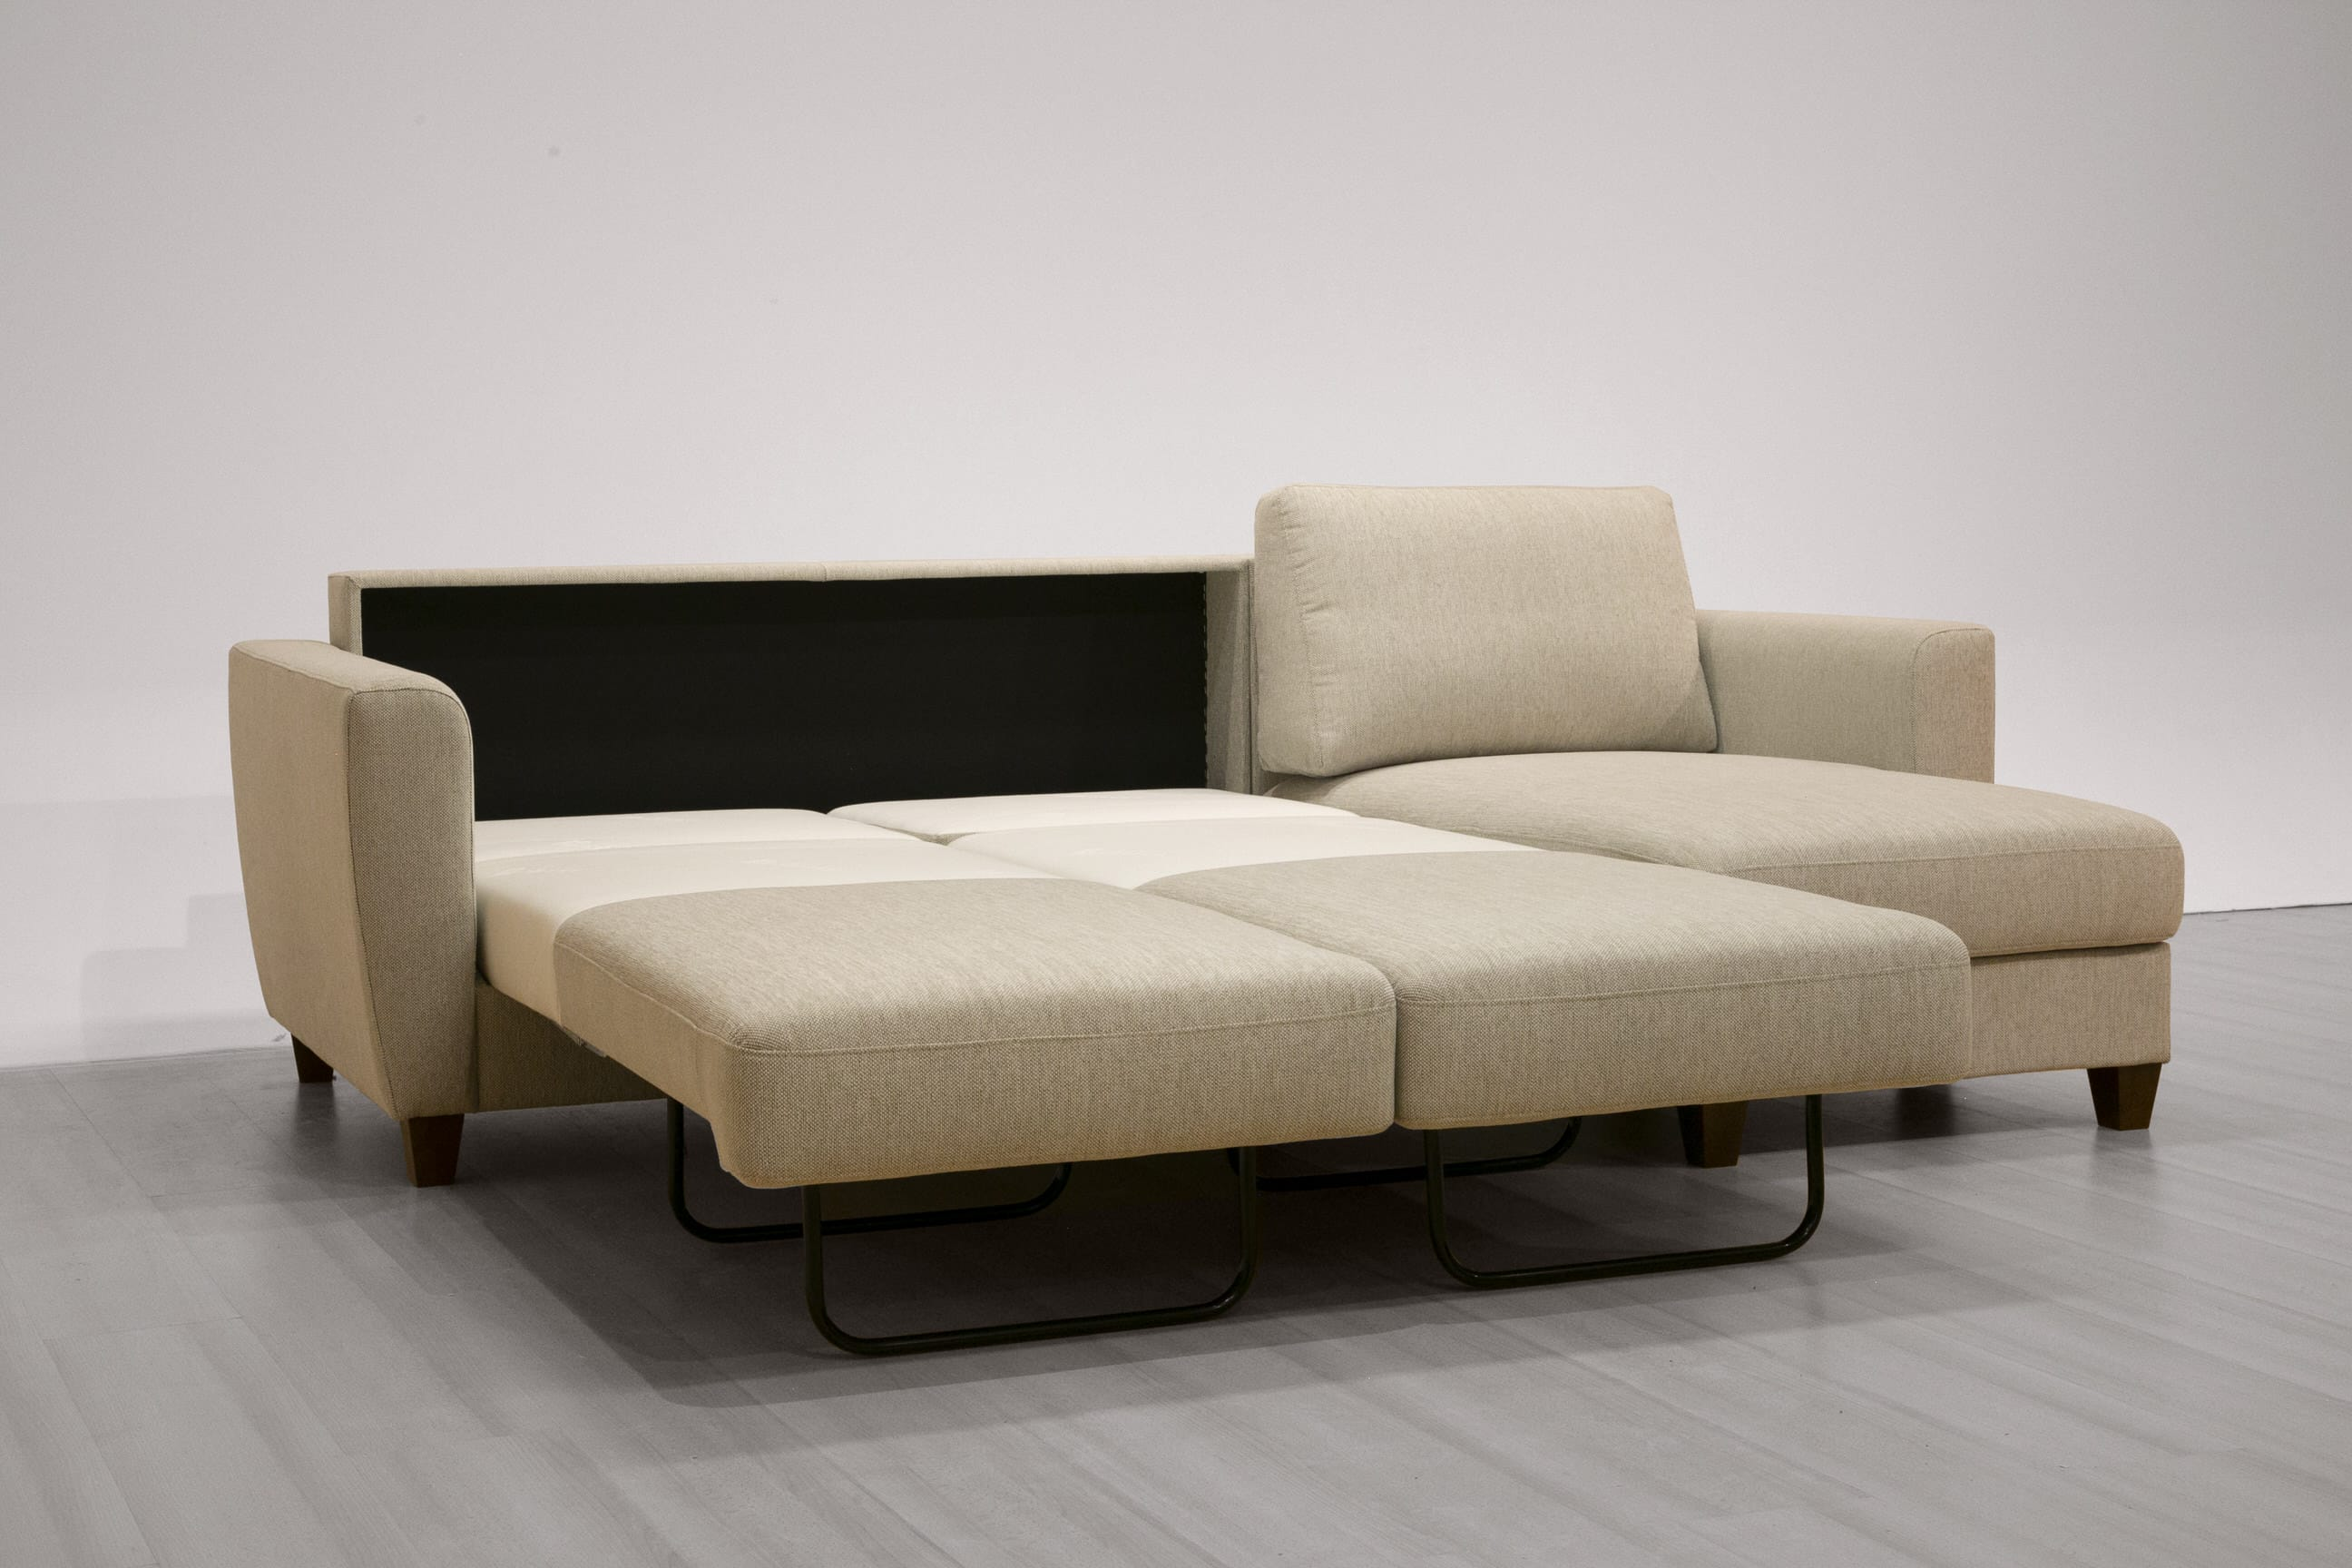 Flex Sectional Sofa Sleeper (Full Size) RHF by Luonto Furniture